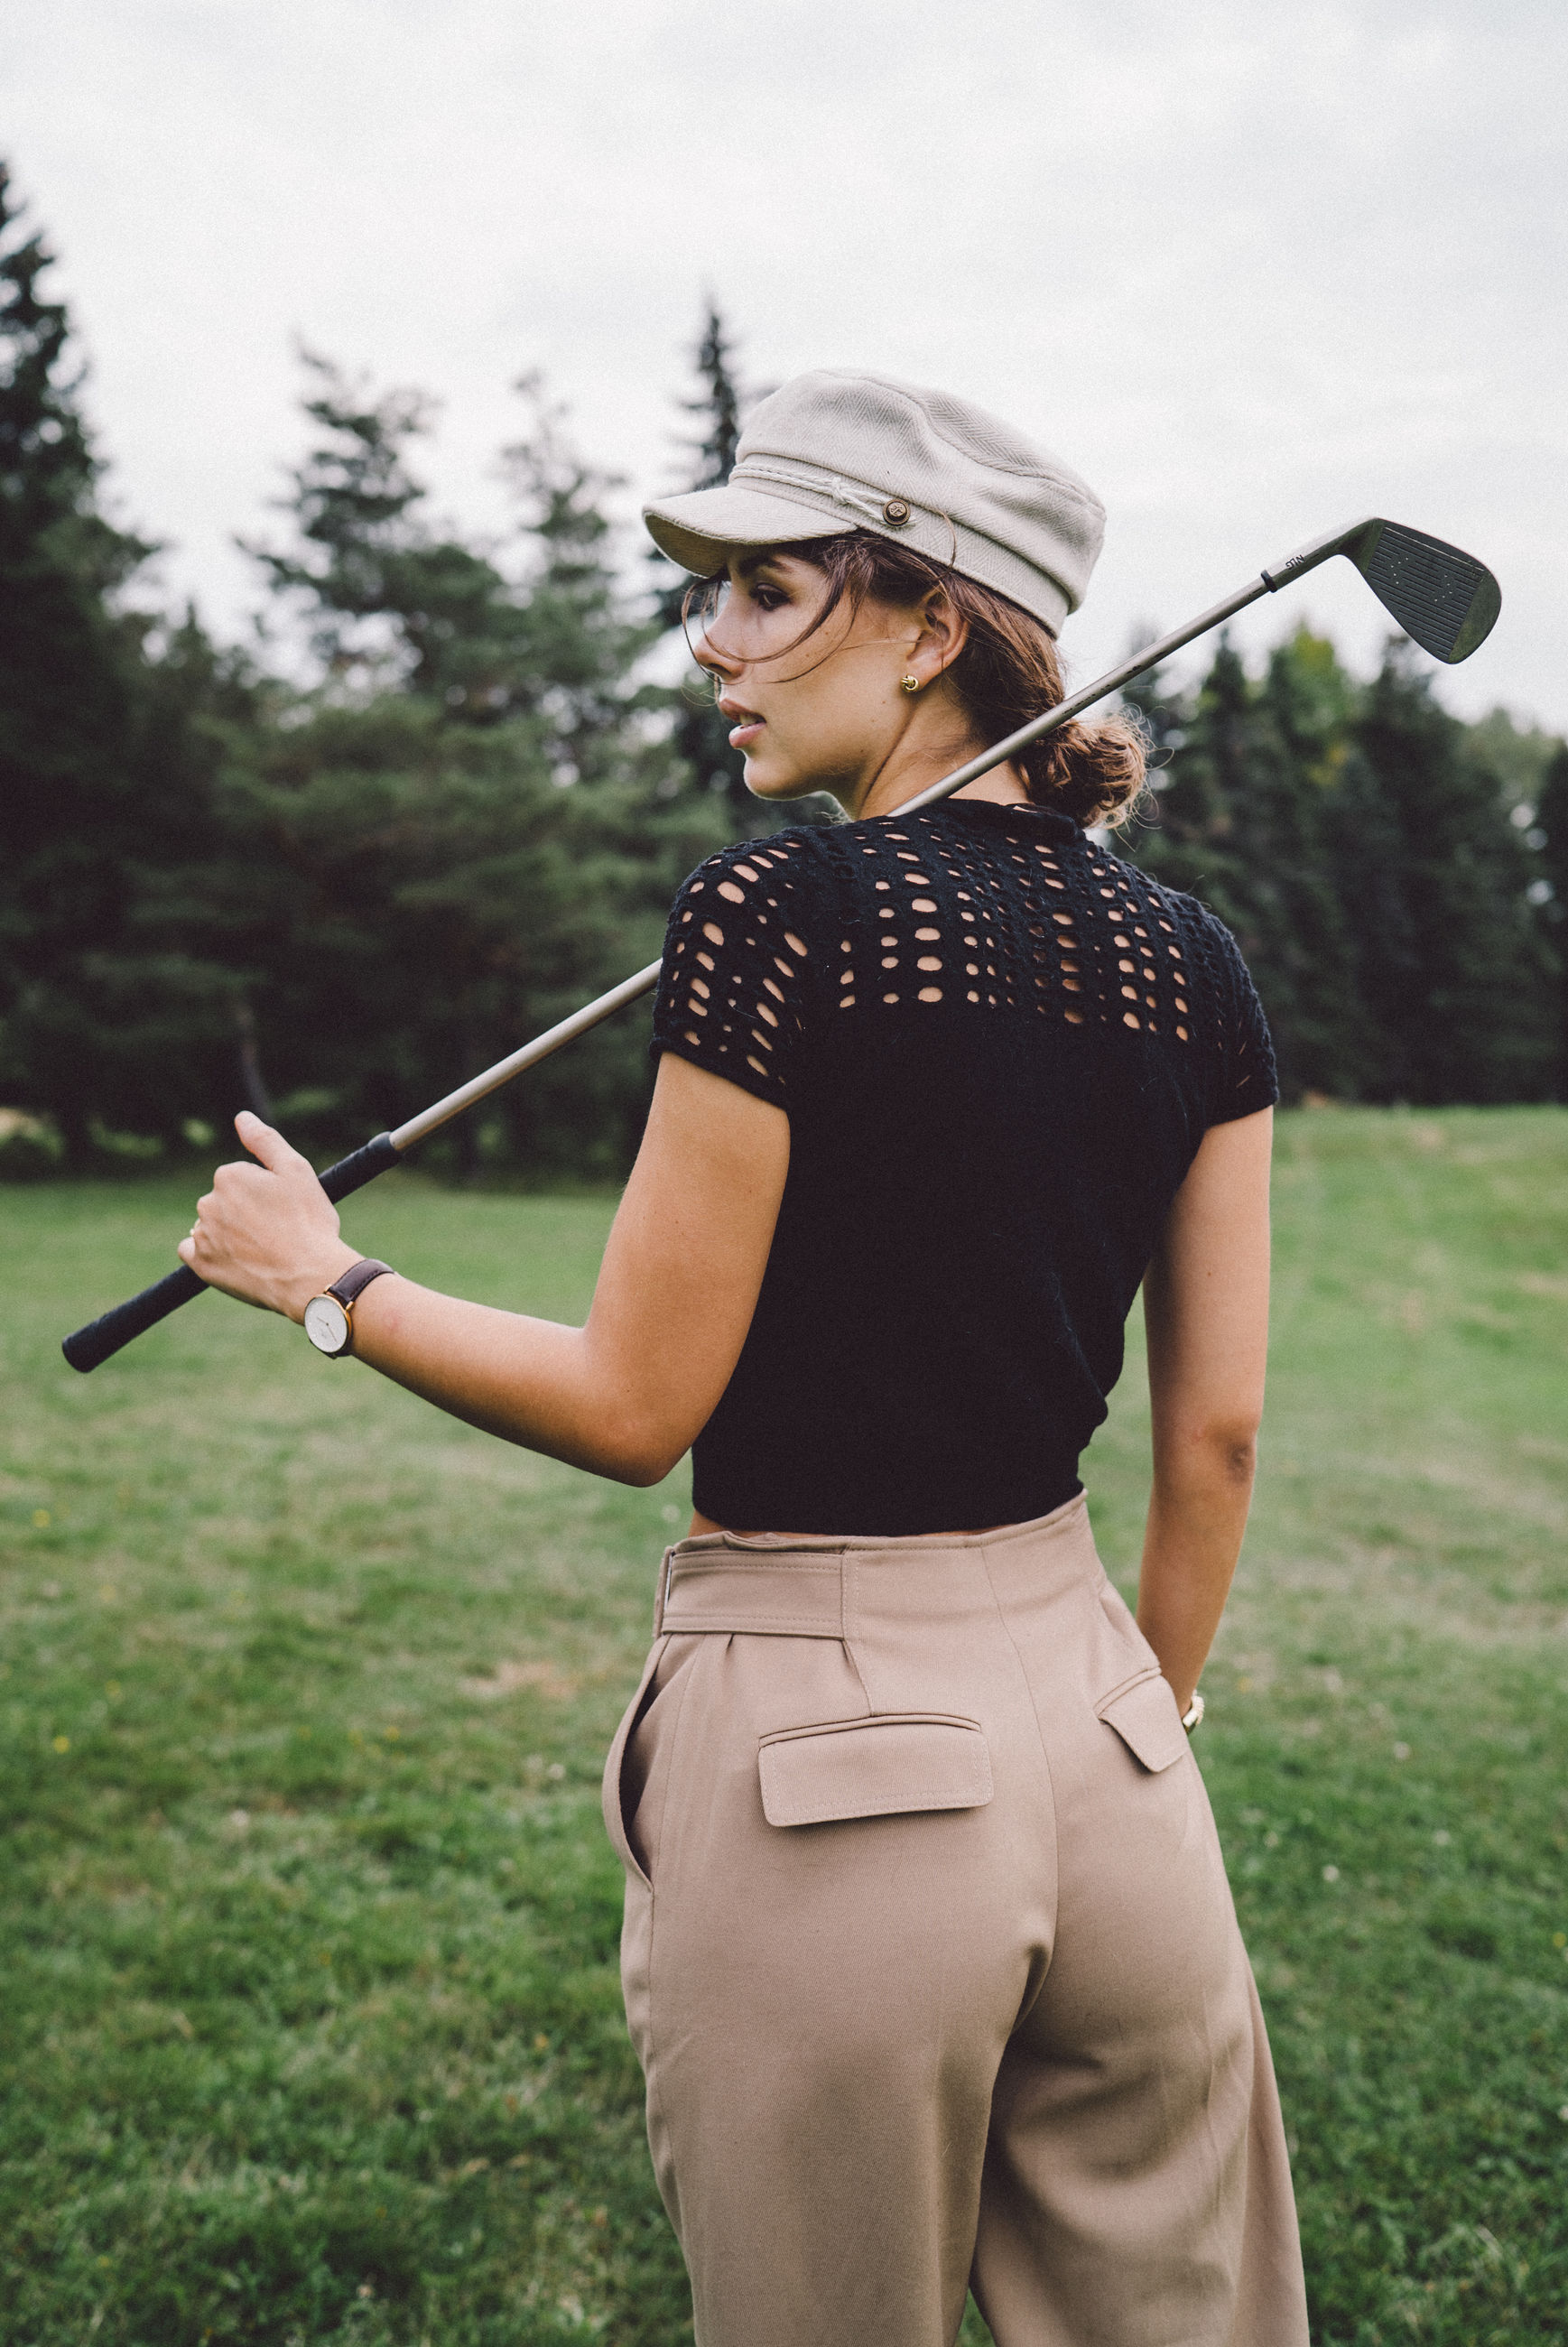 leisure activity, sport, one person, grass, golf, lifestyles, real people, golf club, three quarter length, plant, nature, activity, holding, golfer, day, young adult, field, standing, golf course, outdoors